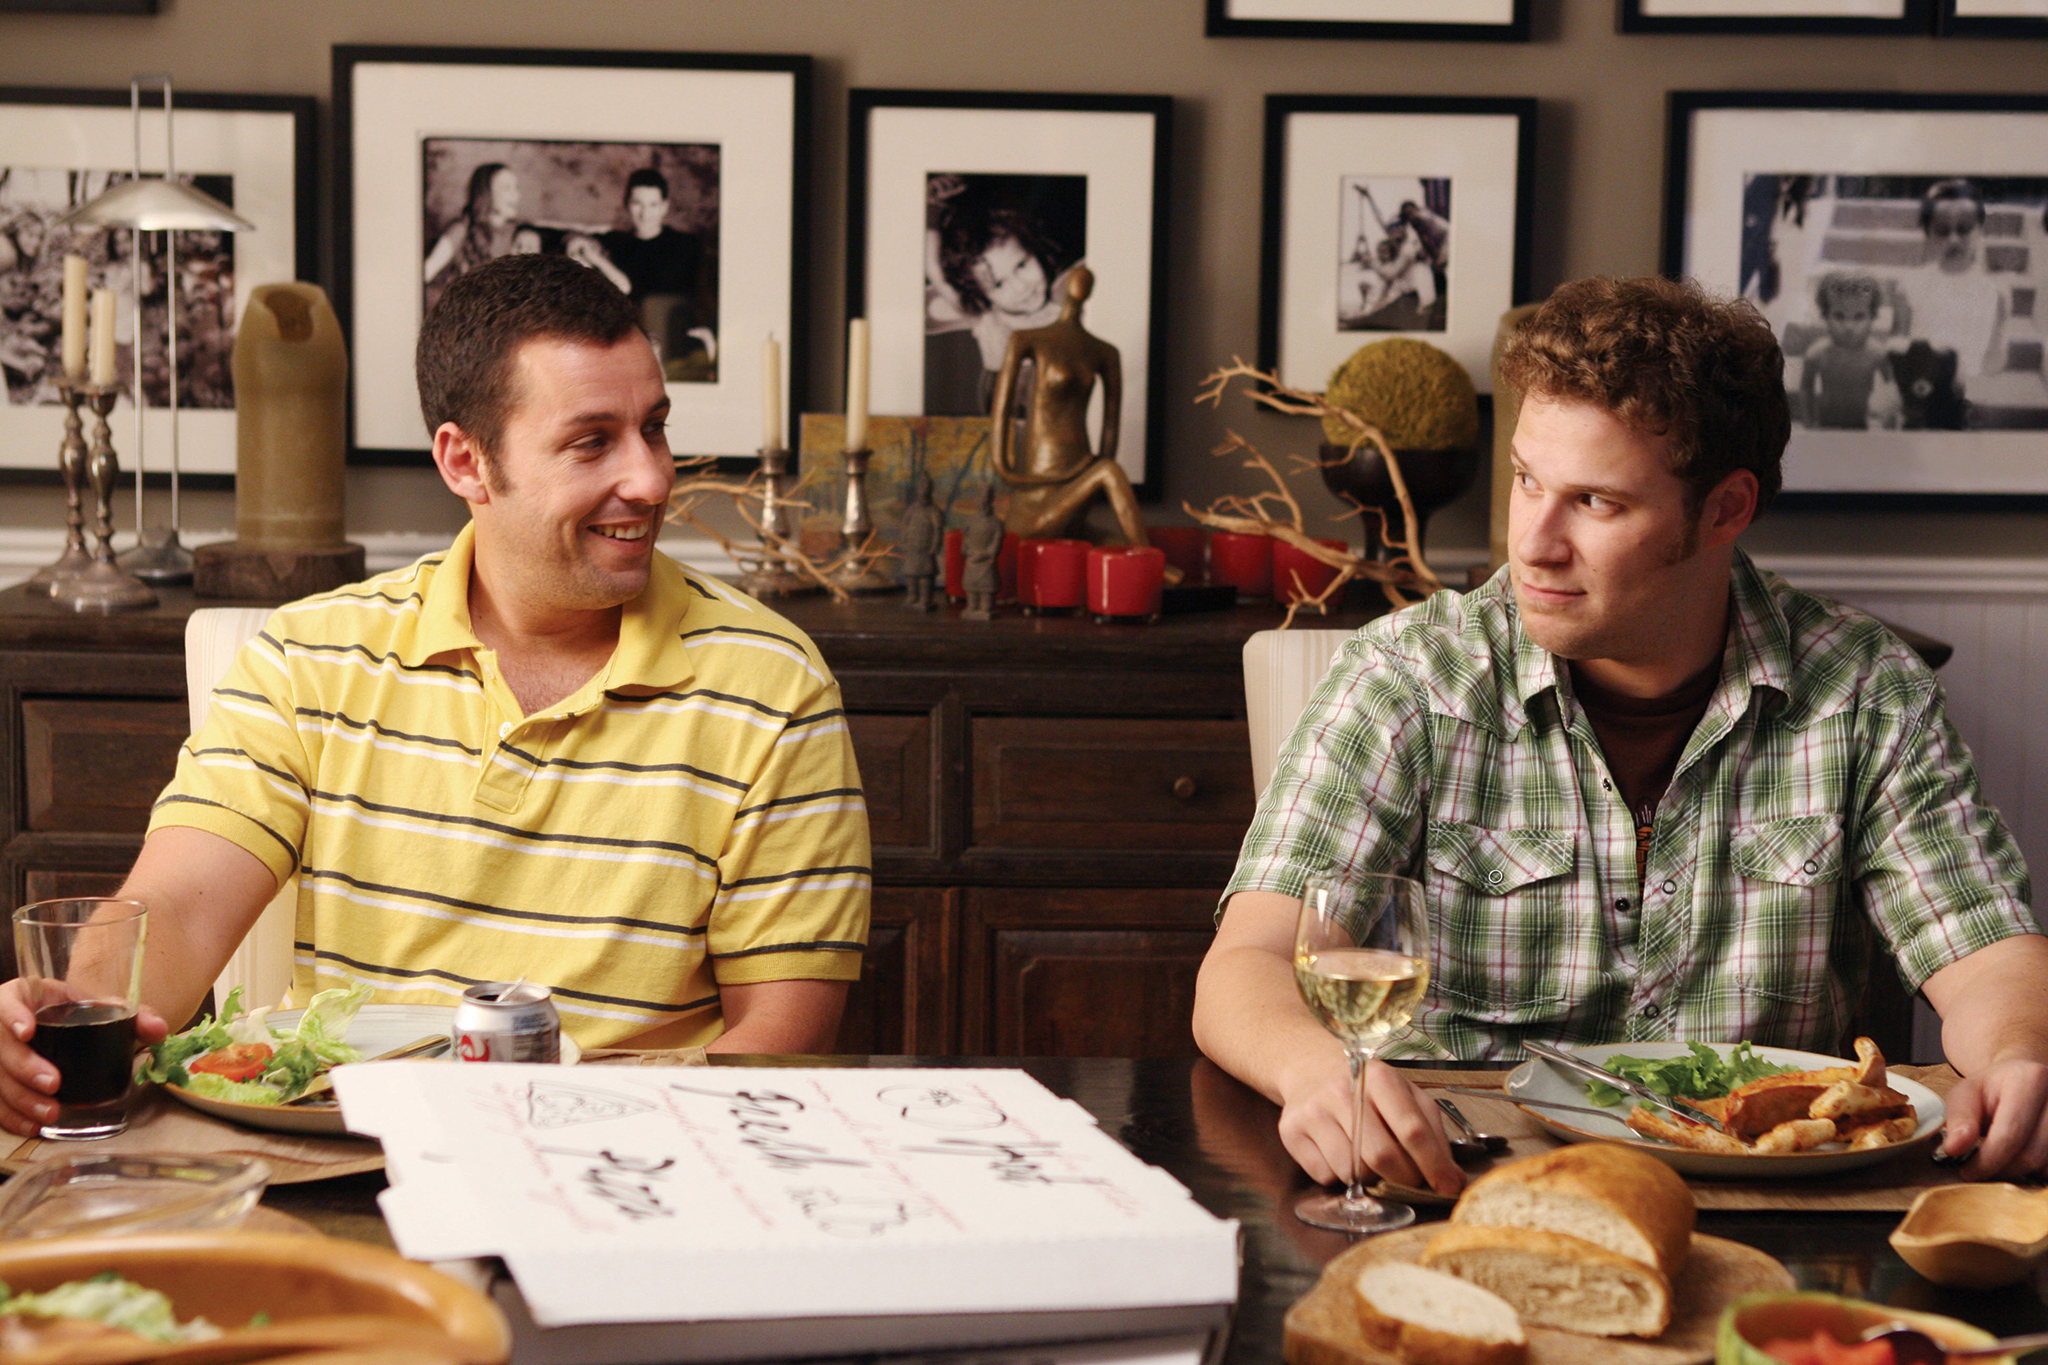 Image of: Fails funny People Is An Underrated Masterpiece And Adam Sandlers Latest Misfires Make It Even Better Lefunnynet Funny People Is Adam Sandler And Judd Apatows Underrated